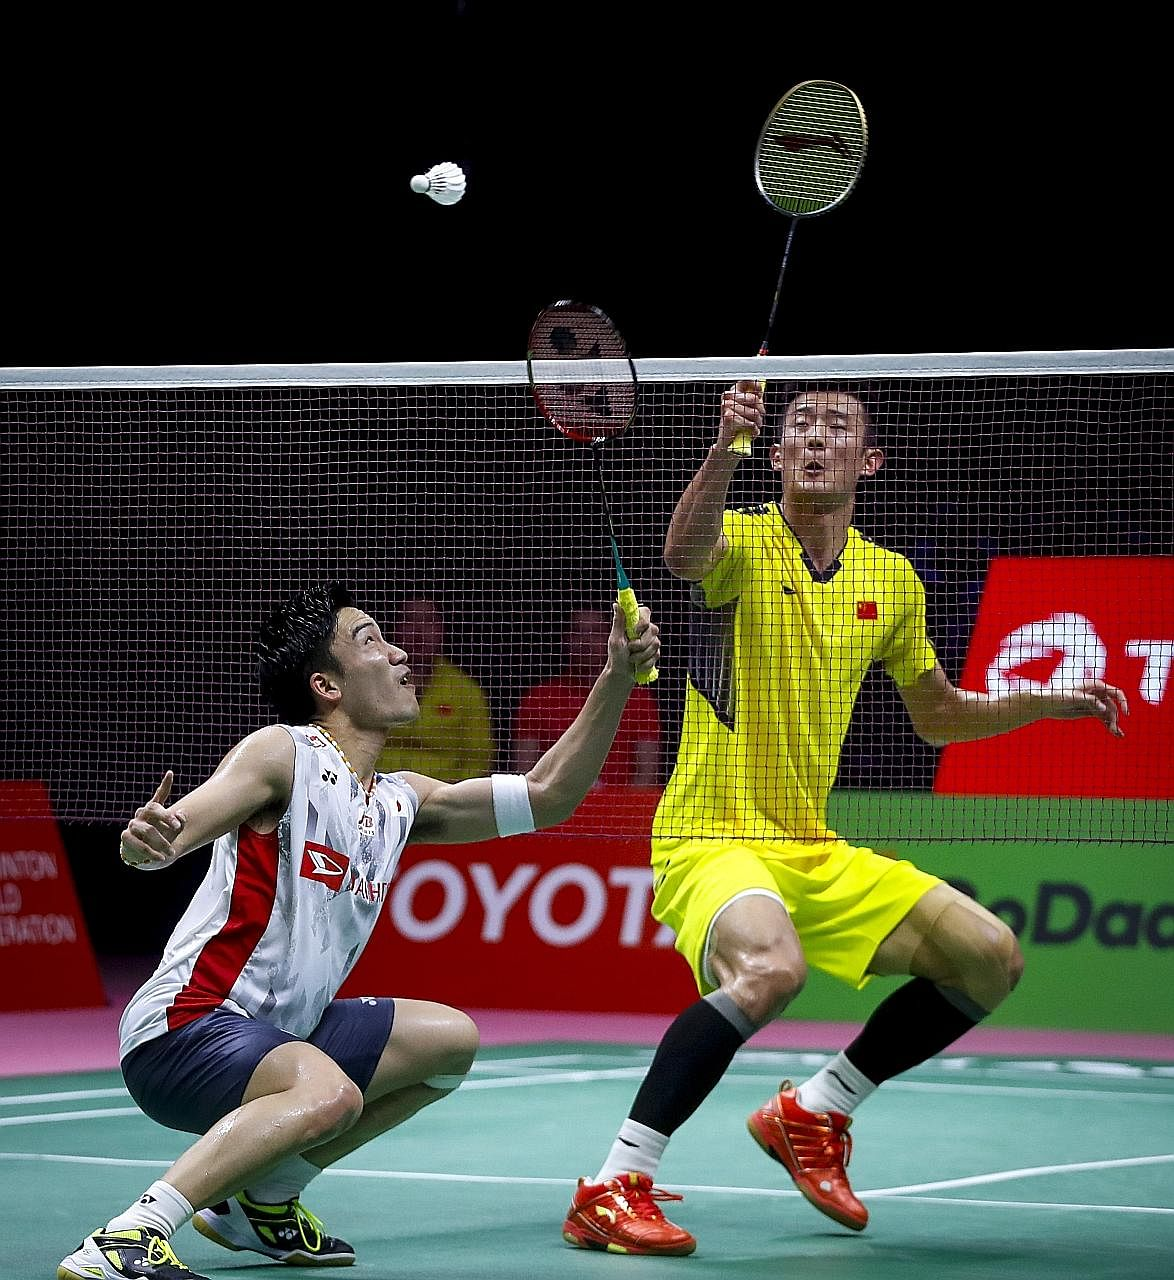 World No. 1 Kento Momota (left) will have to wait till next year if he is to avenge Japan's loss to China in the 2018 Thomas Cup final.